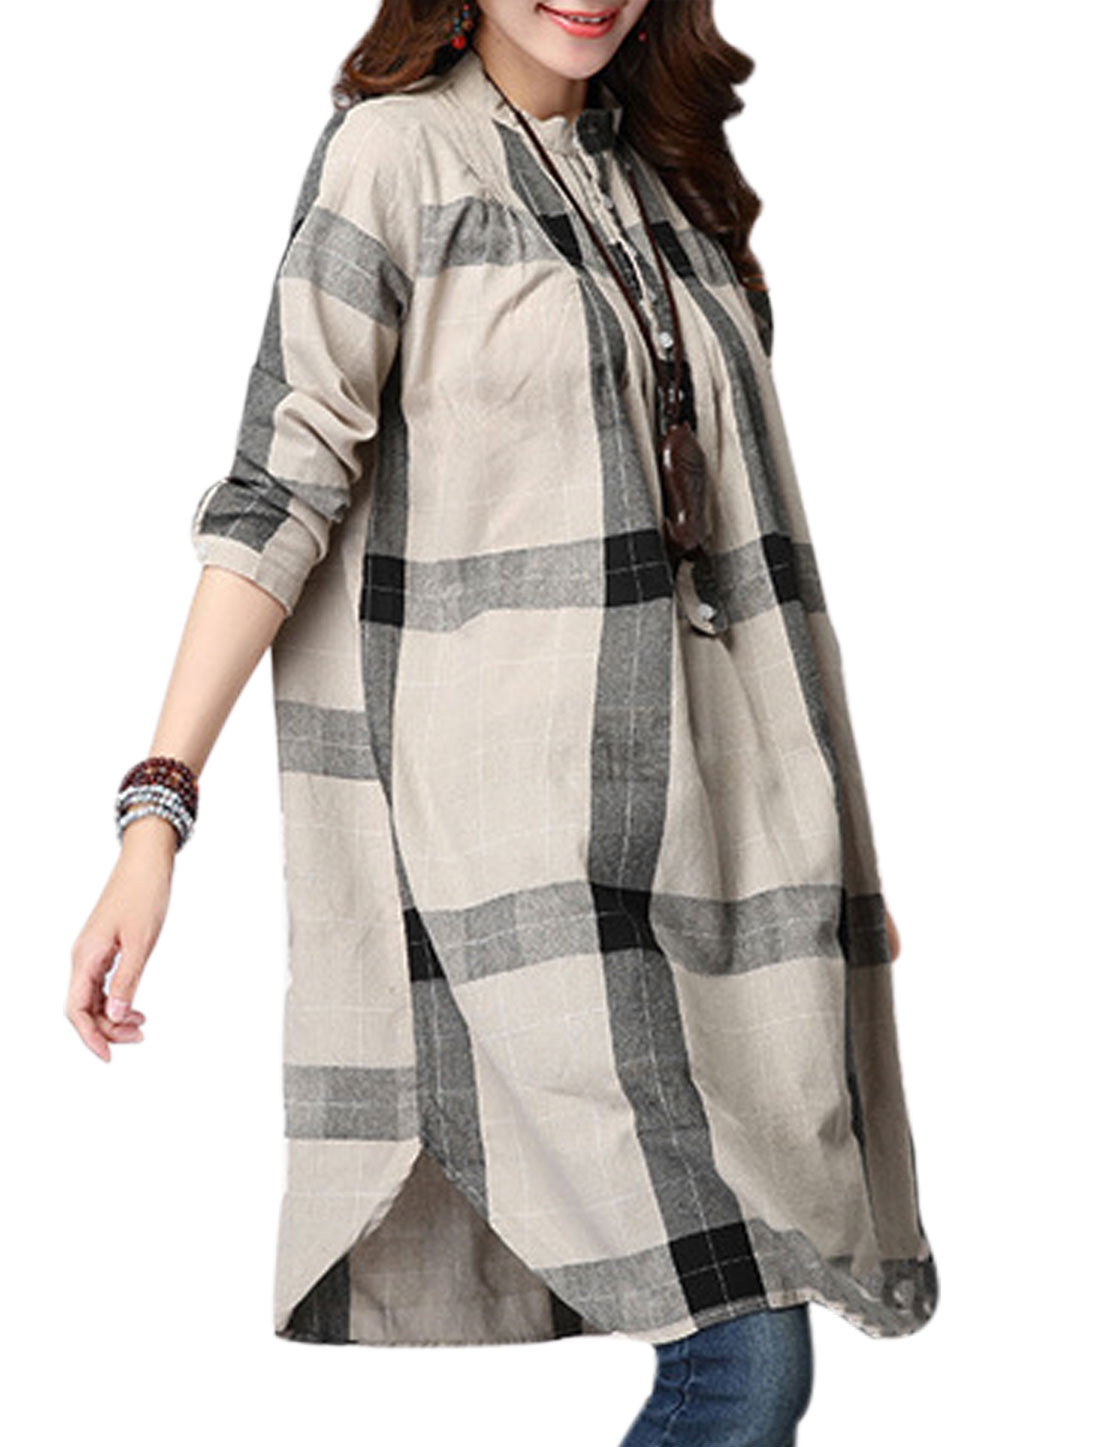 Lady Stand Collar Plaids Pattern Button Closure Tunic Top Beige S